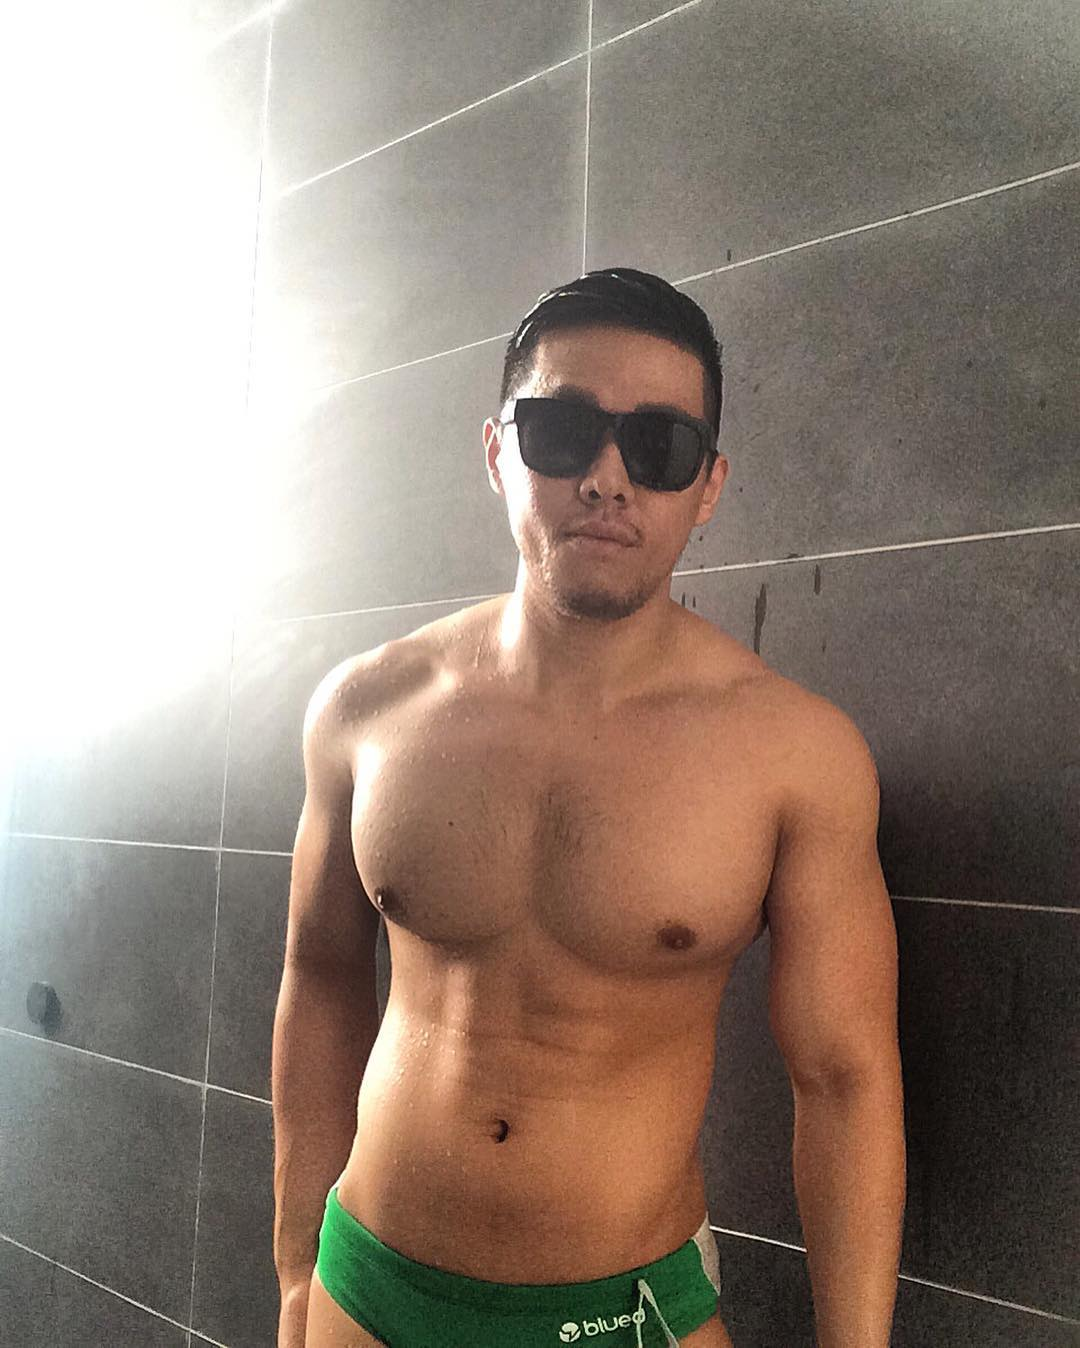 World's Hottest Guy in White Party Bangkok Royalty in Online Gay Travel Guide (24)